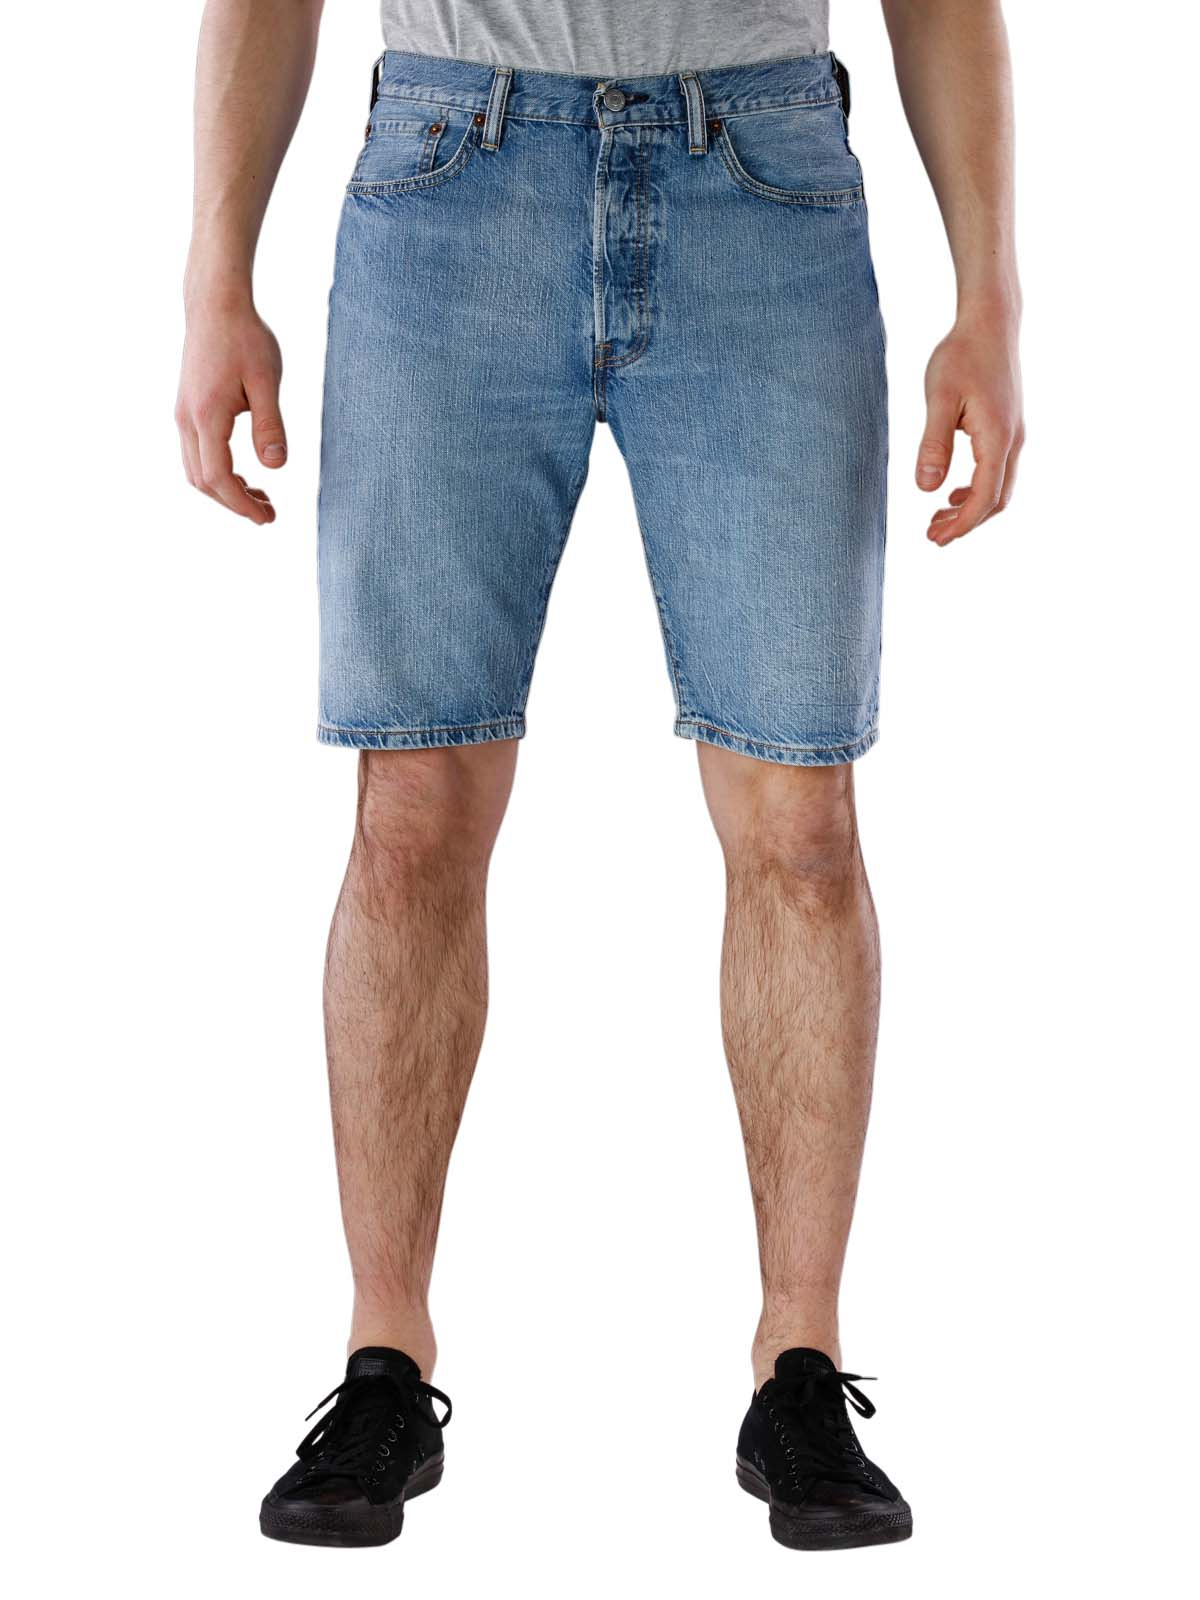 online store 142b7 cc3ae McJeans.ch - Fast Delivery | Levi's 501 Hemmed Short livin easy ltwt | Free  Shipping - Free Returns